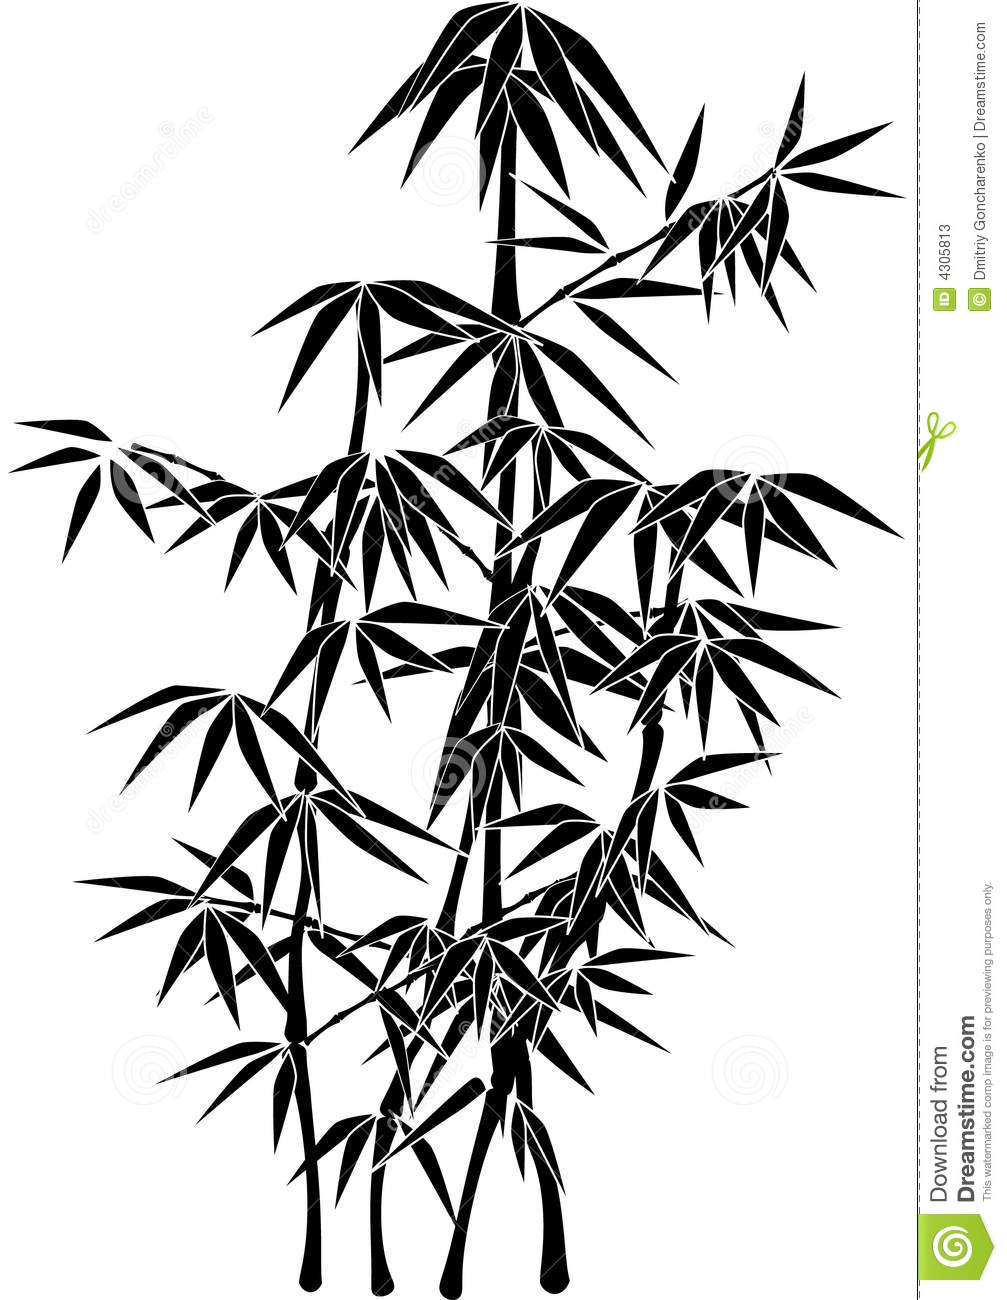 giant bamboo plant silhouette stock vector illustration